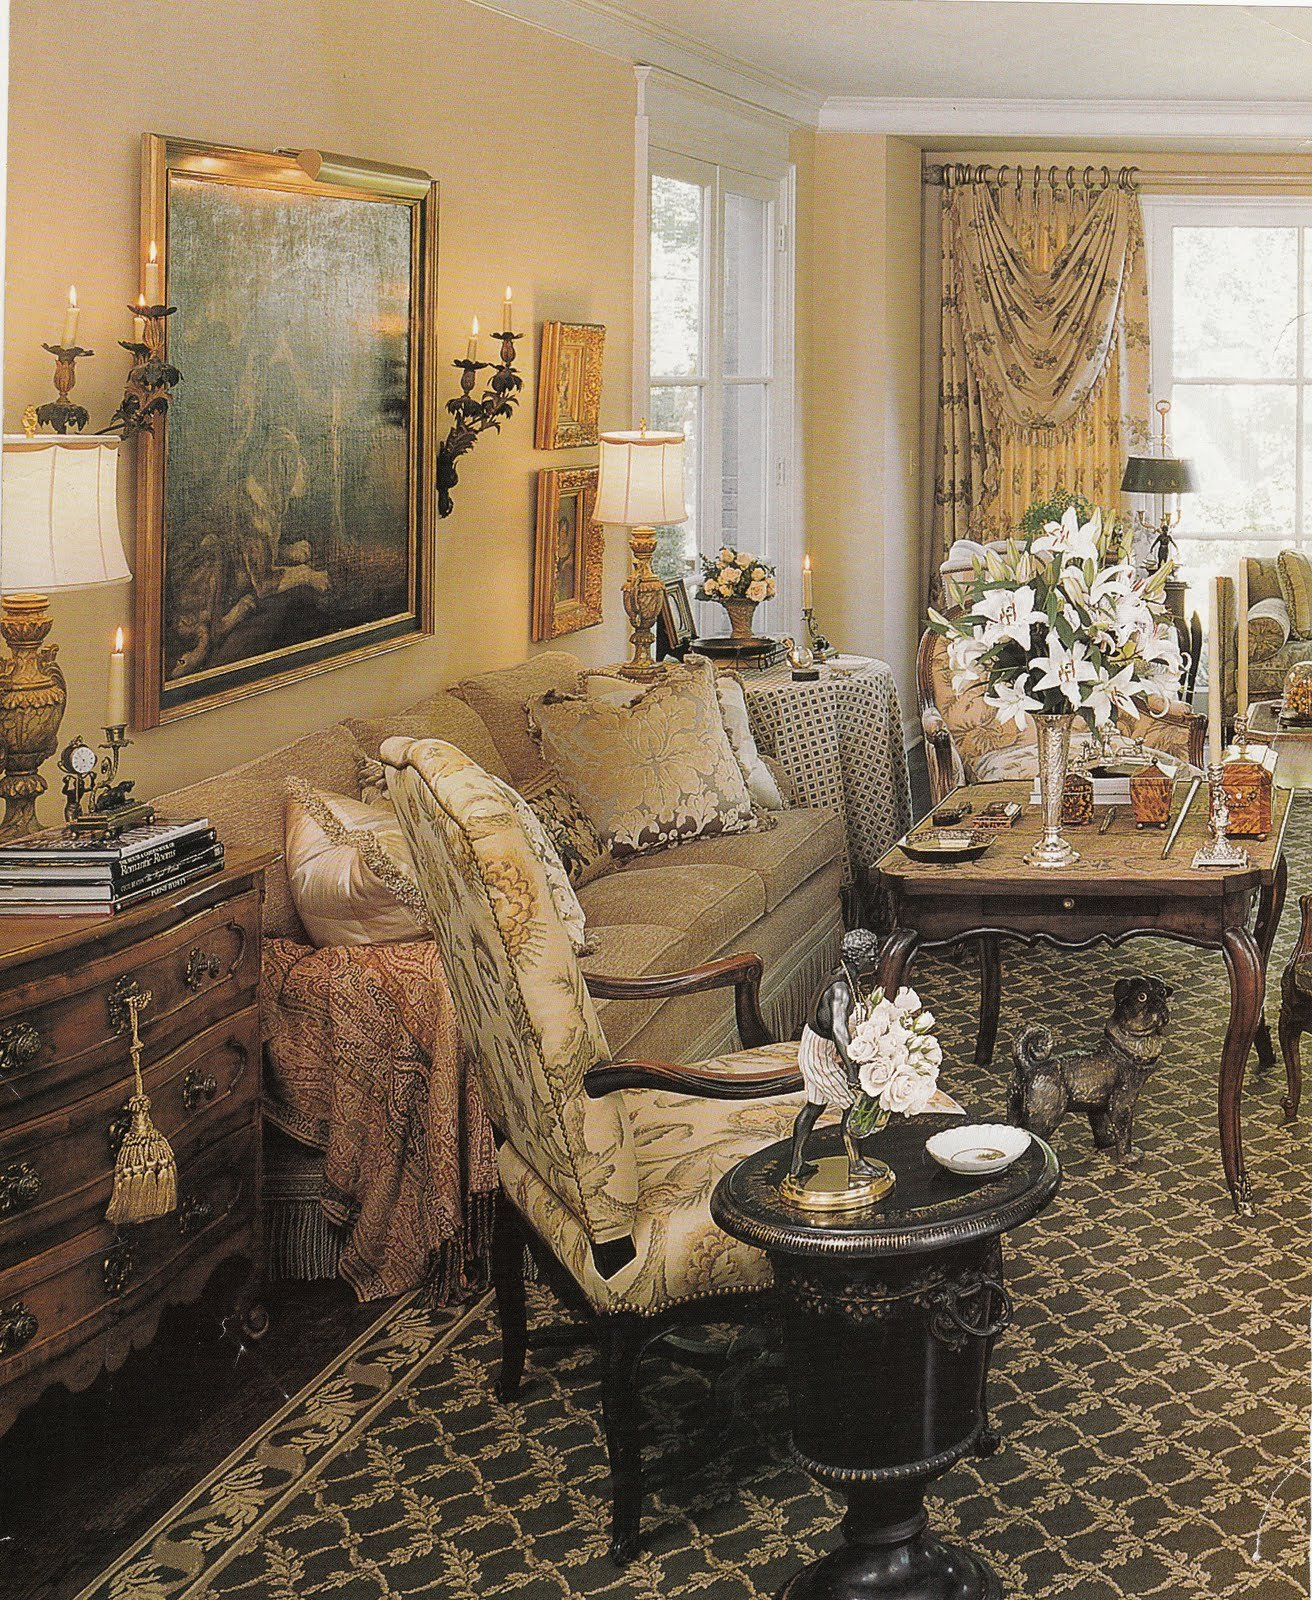 Pictures Of French Country Decor Luxury Hydrangea Hill Cottage French Country Decorating